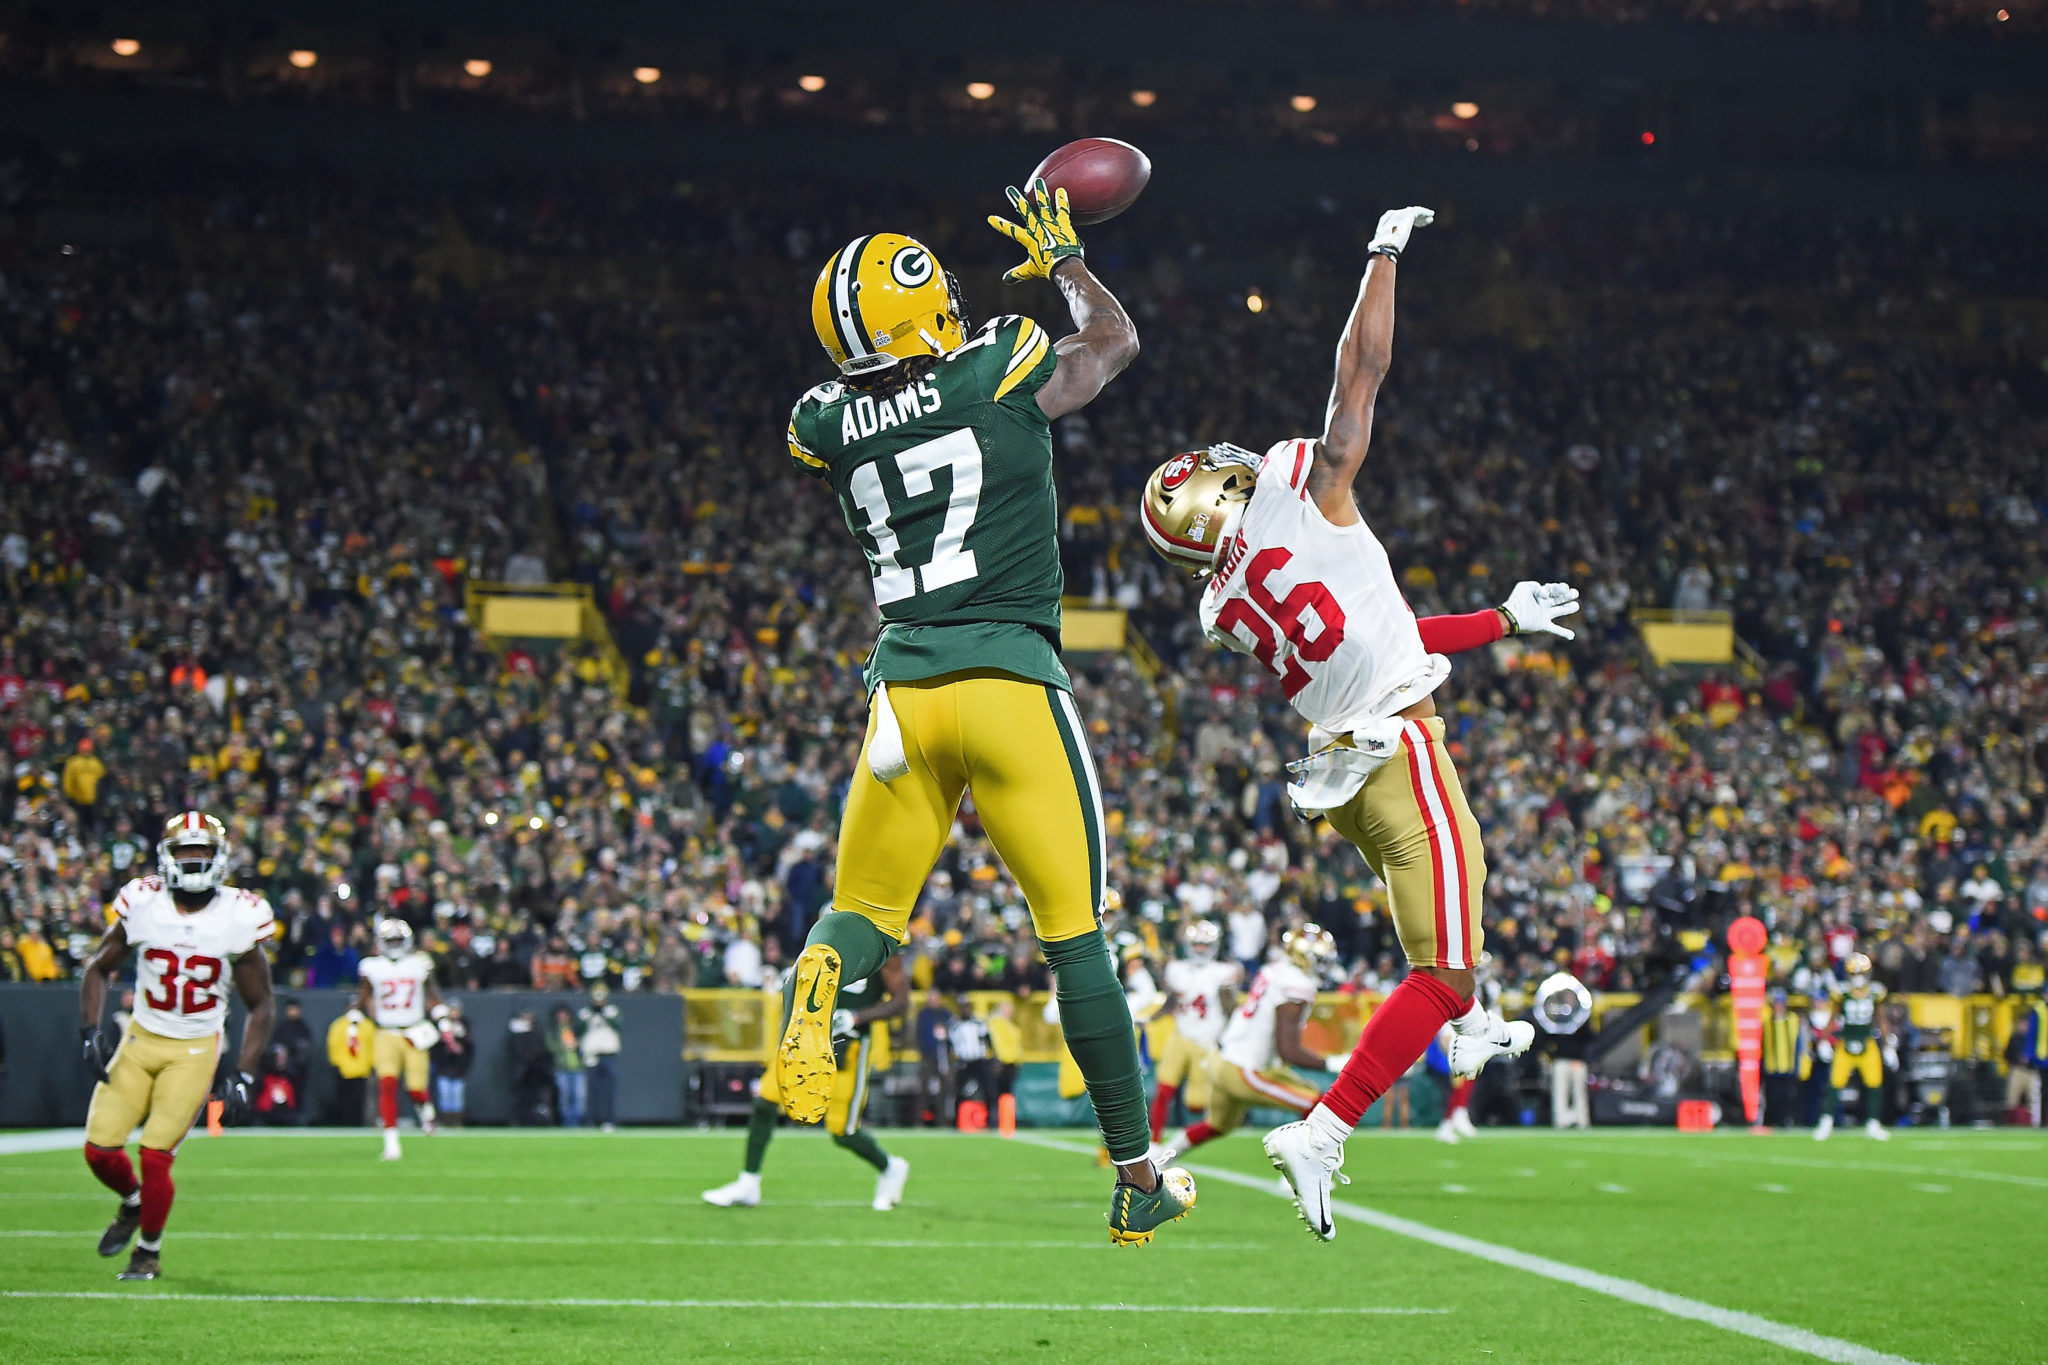 Green Bay Packers WR Position Has Time on its Side